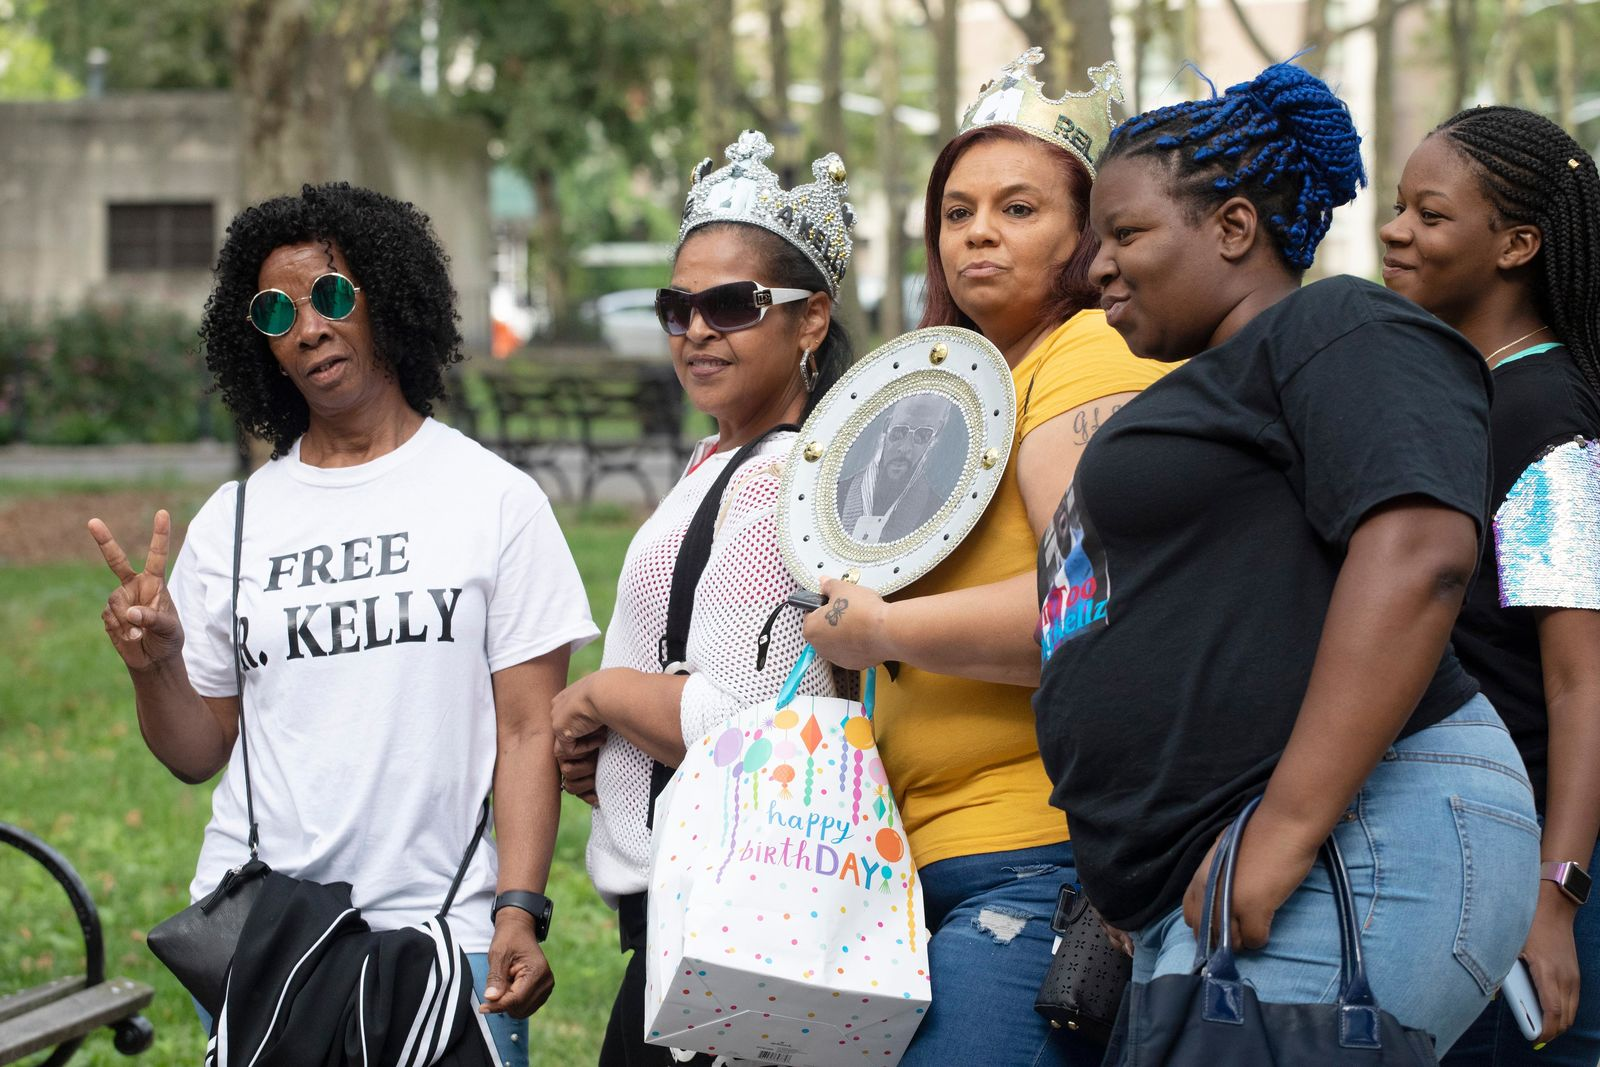 Supporters of R&B performer R. Kelly arrive at federal court in Brooklyn for his hearing, Friday, Aug. 2, 2019, in New York. Kelly faces an arraignment on charges he sexually abused women and girls. (AP Photo/Mark Lennihan)